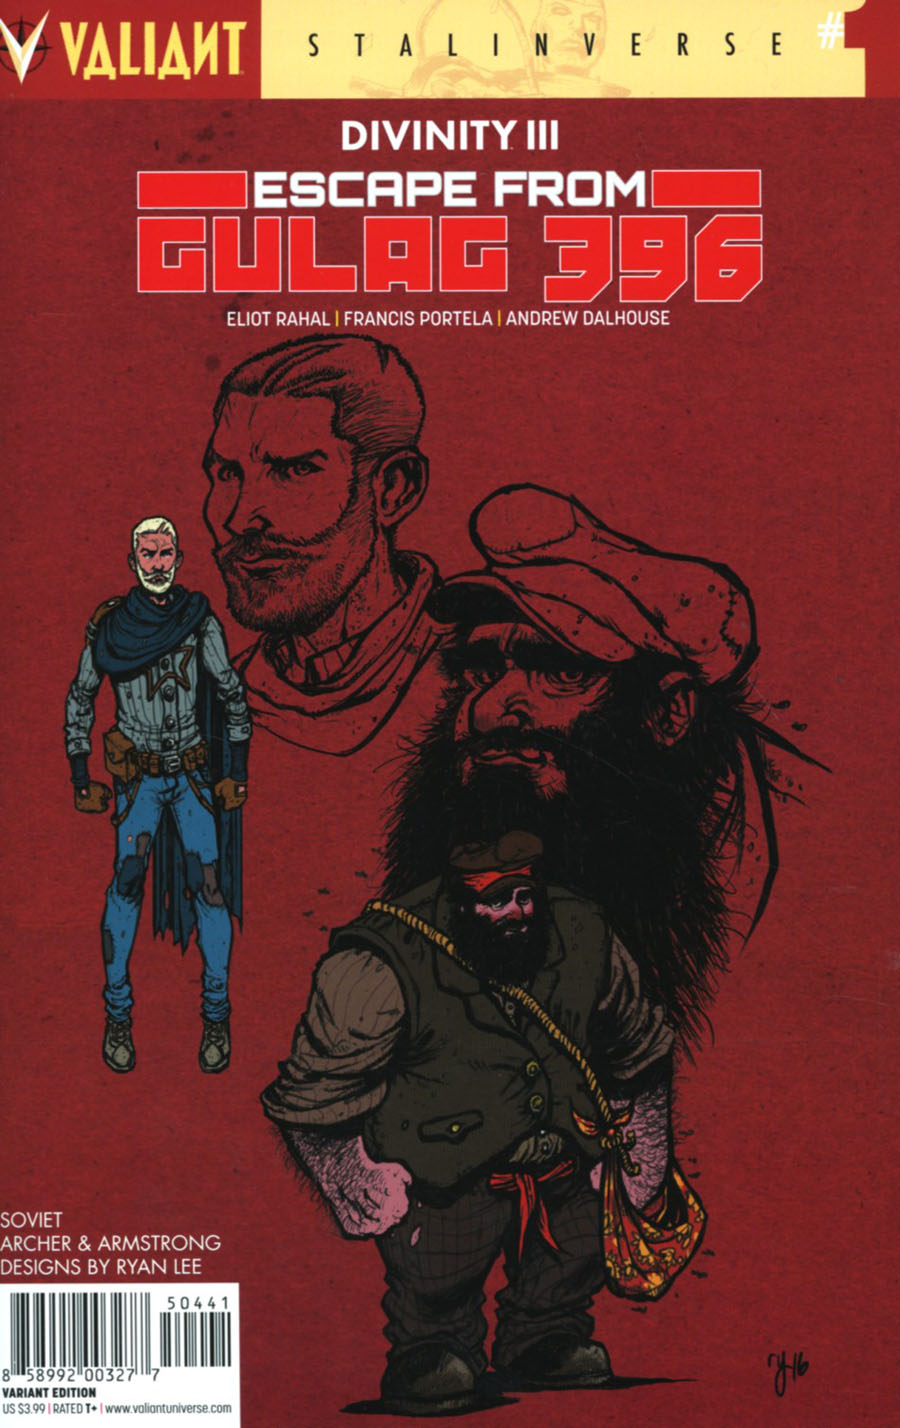 Divinity III Escape From Gulag 396 #1 Cover D Incentive Ryan Lee Character Design Variant Cover